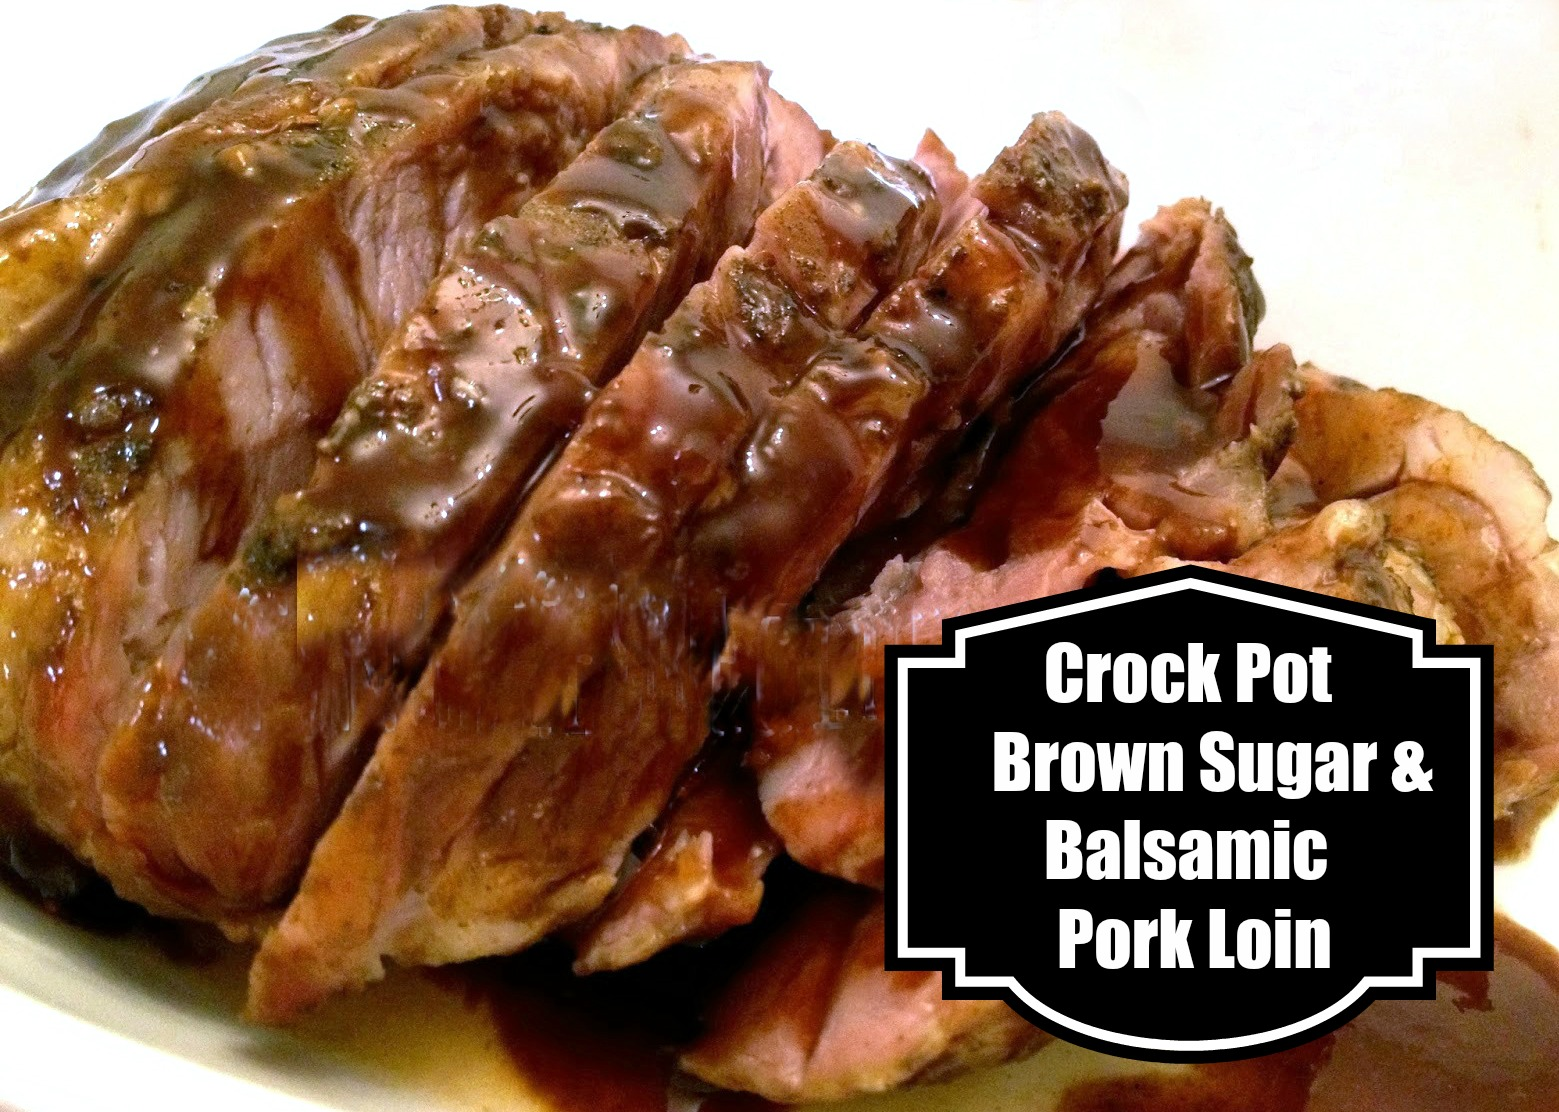 Crock-Pot Brown Sugar and Balsamic Pork Roast